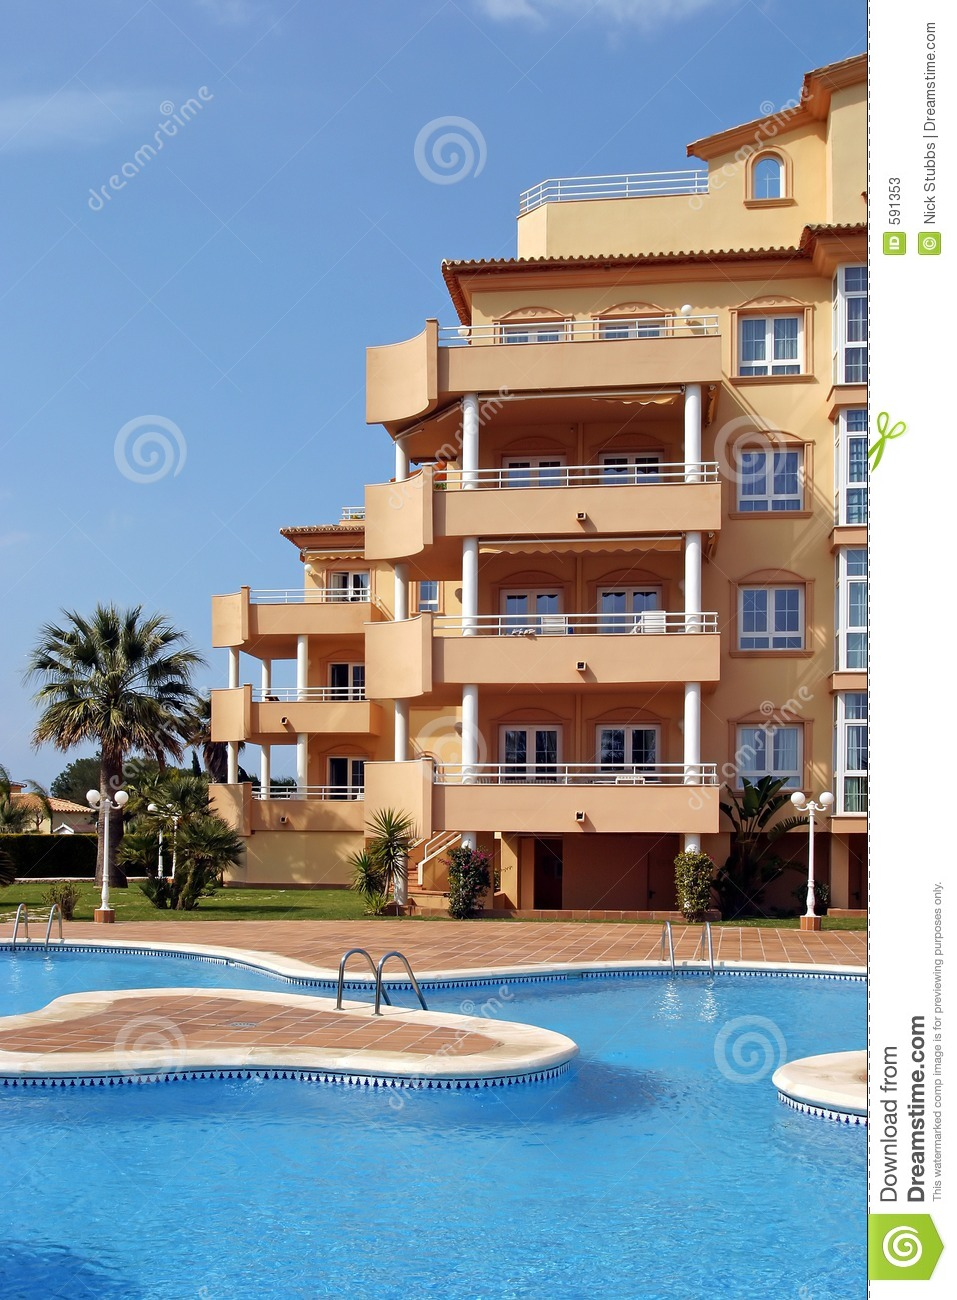 Luxury apartments exterior - Apartments Holiday Luxury